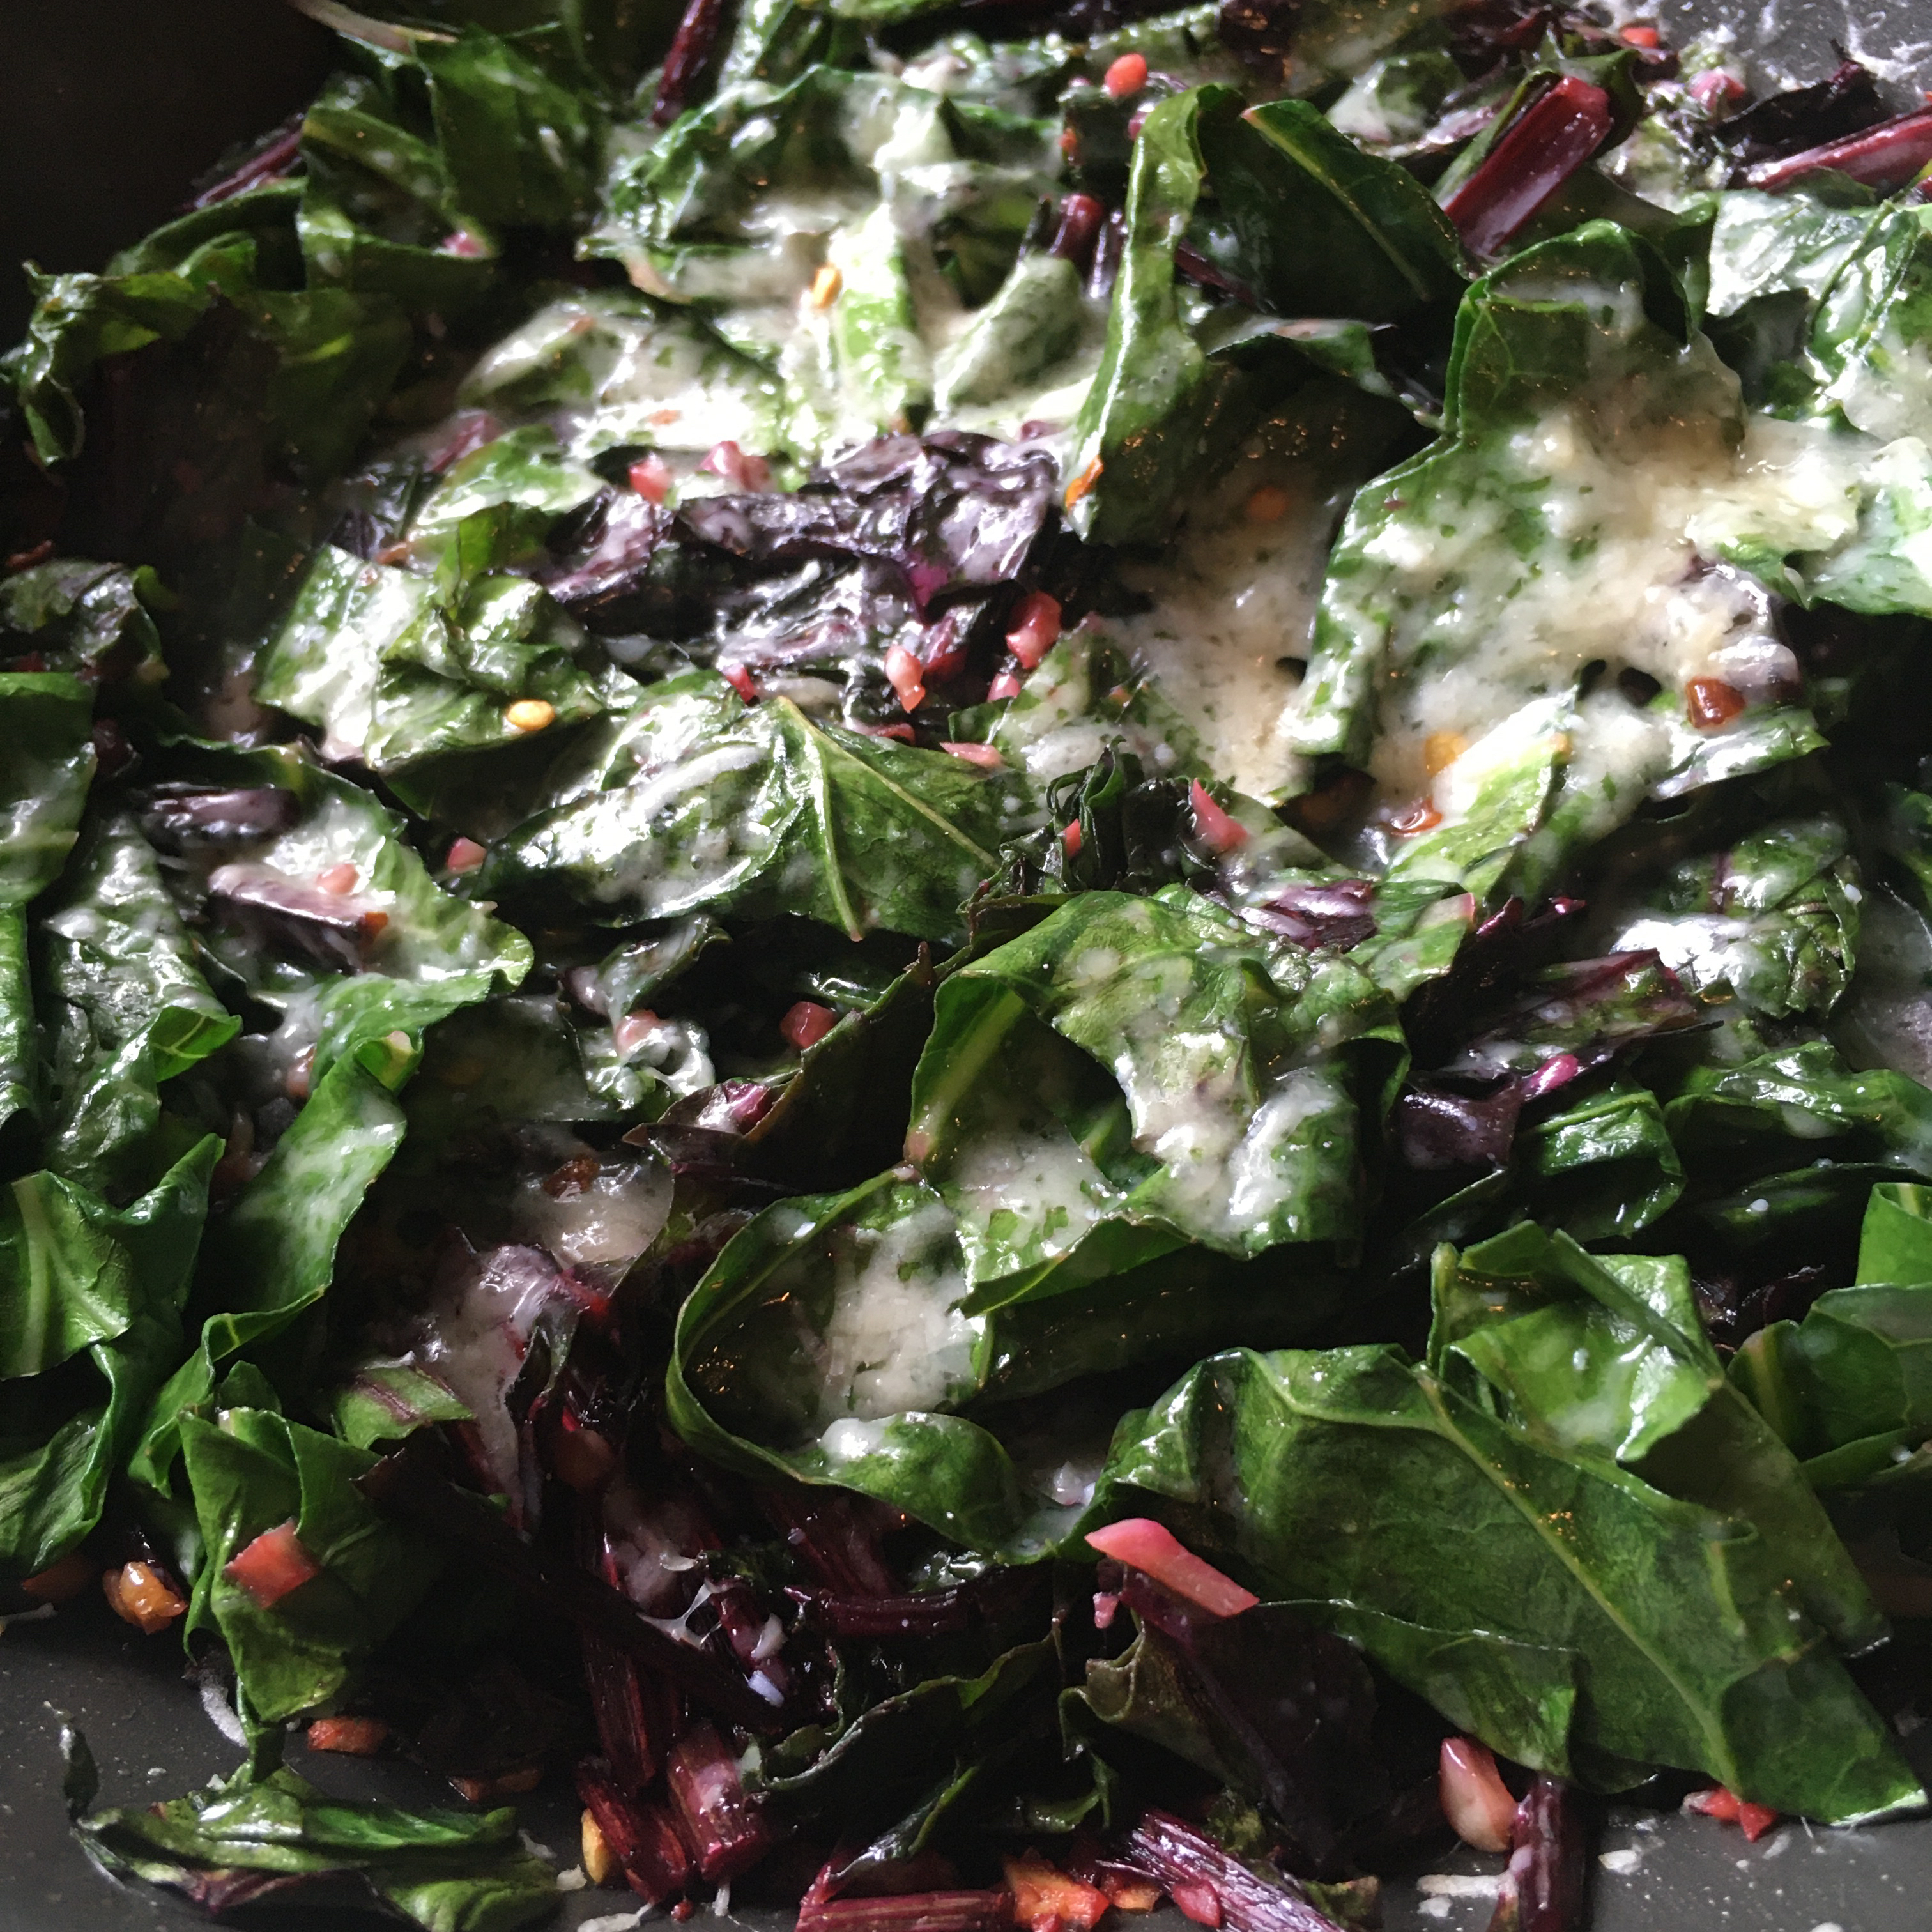 """Kale, chard, or collards are great sauteed with garlic and topped with melted Parmesan cheese. """"I used beet greens and collard greens,"""" says barbara. """"Came out really well. I sautéed the beat greens first with the garlic, and then put in all the greens. Great recipe to use up all sorts of greens."""""""